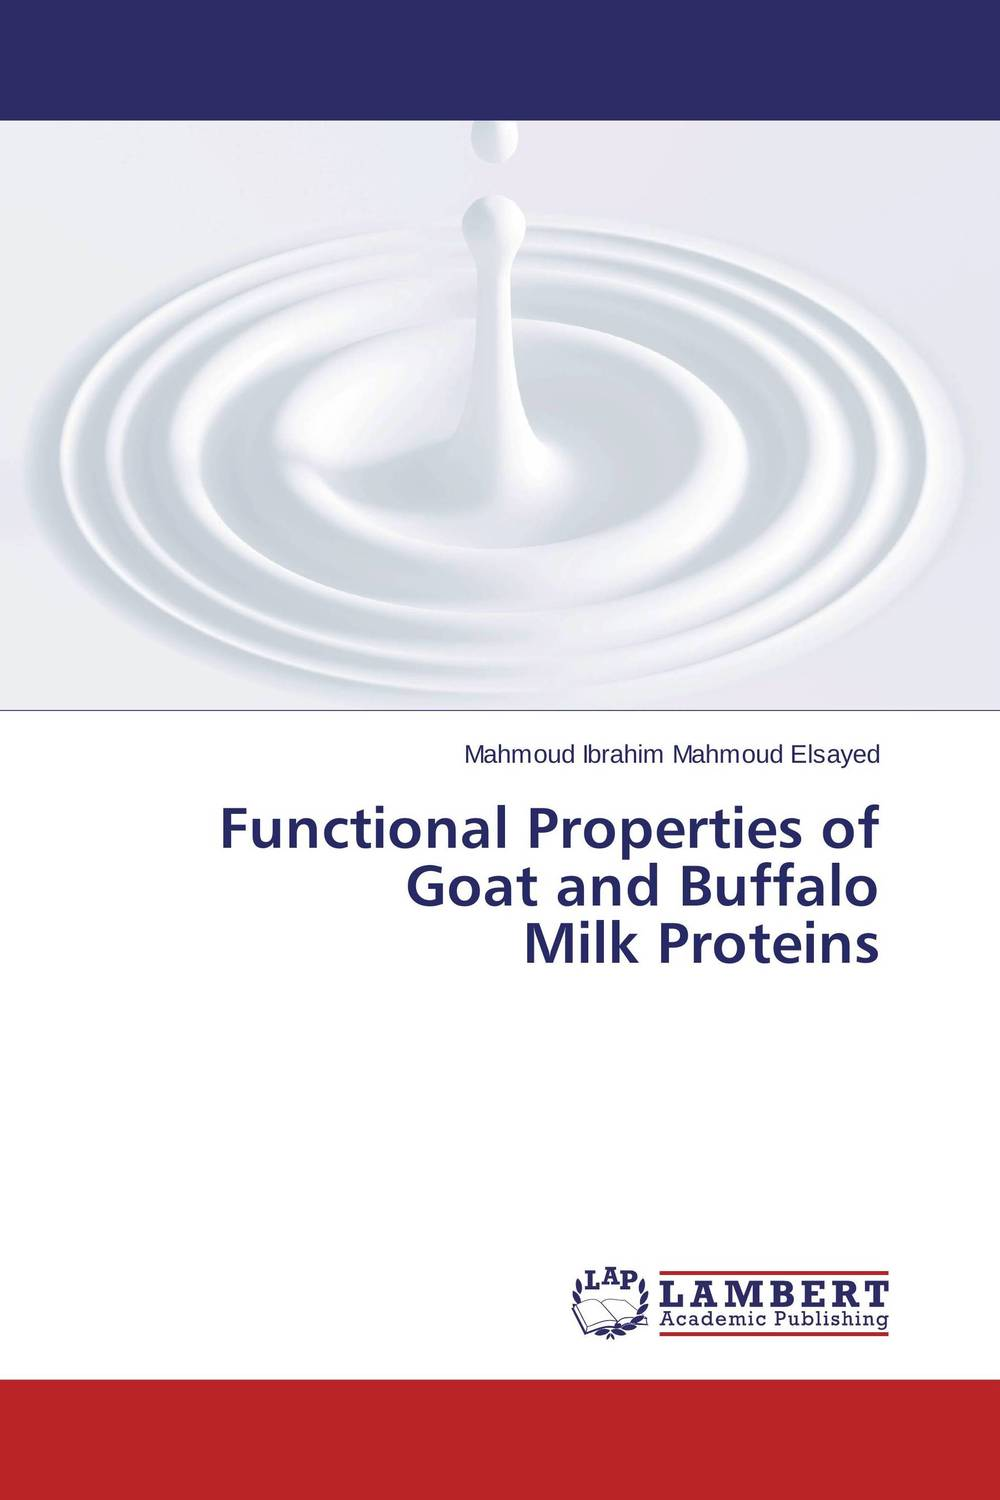 Functional Properties of Goat and Buffalo Milk Proteins